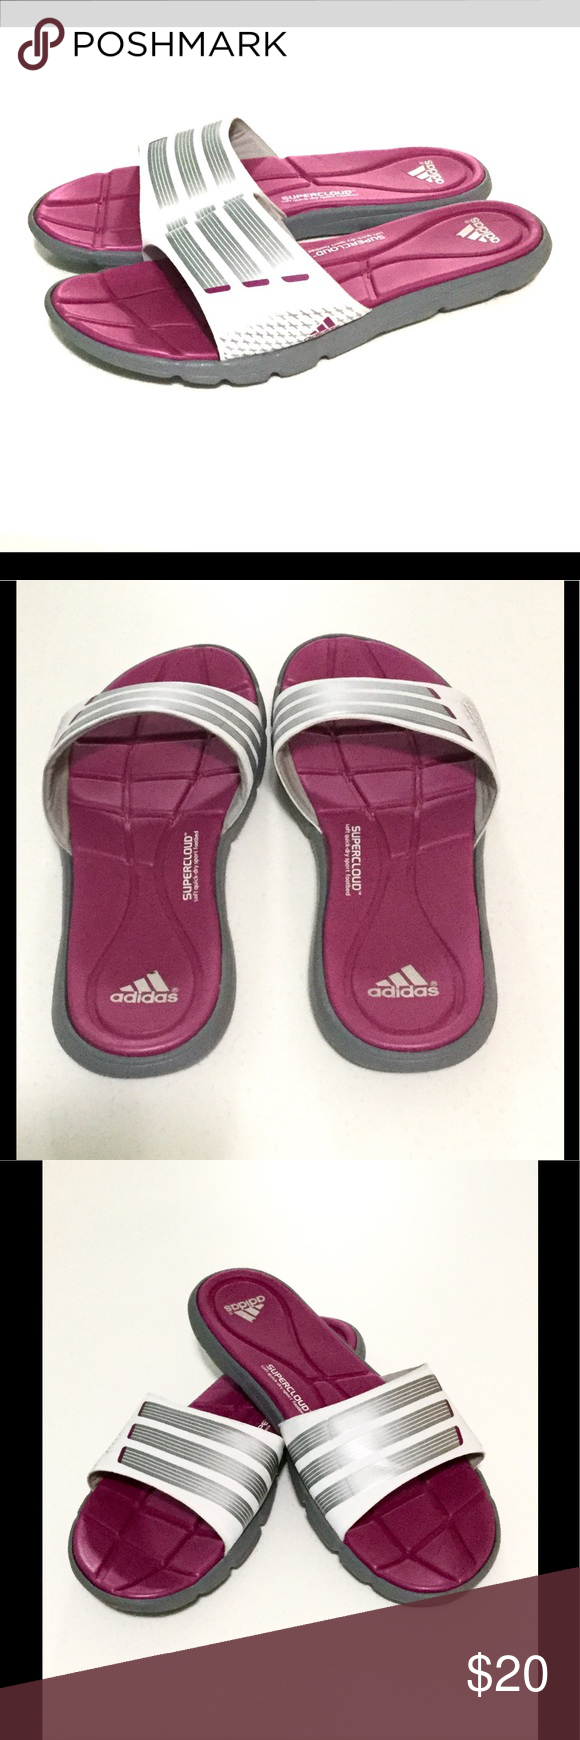 98c84ed8060f31 Adidas Slides Pink and White with Cloudfoam Soles These Adidas slides    sandals   slippers